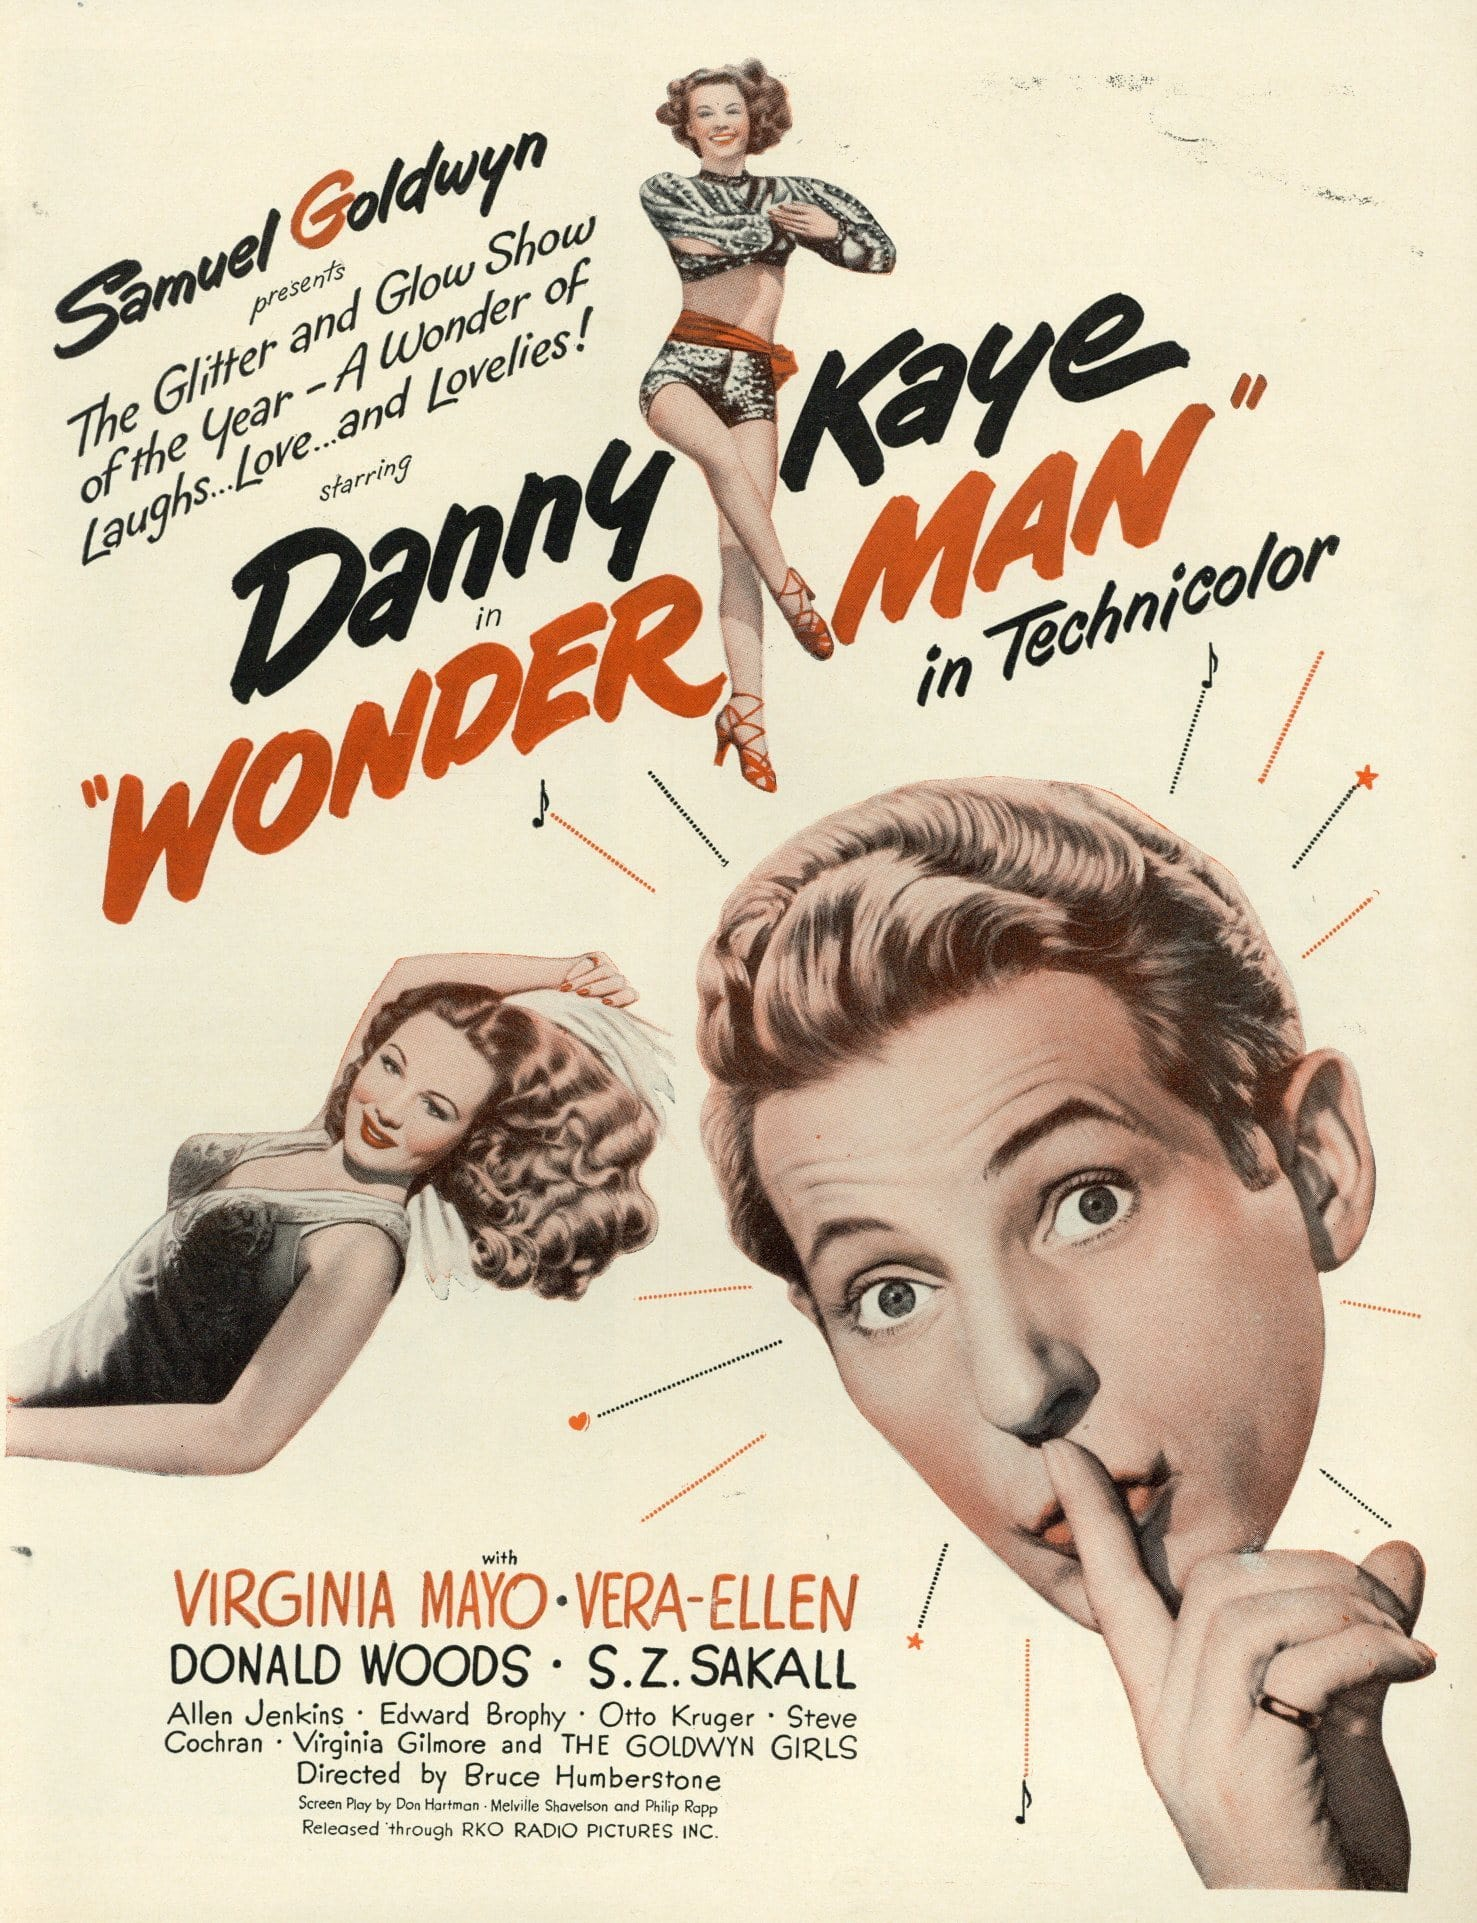 Wonder Man 1945 Movie Advertisement - Danny Kaye Memorabilia - Home Theater Wall Hanging